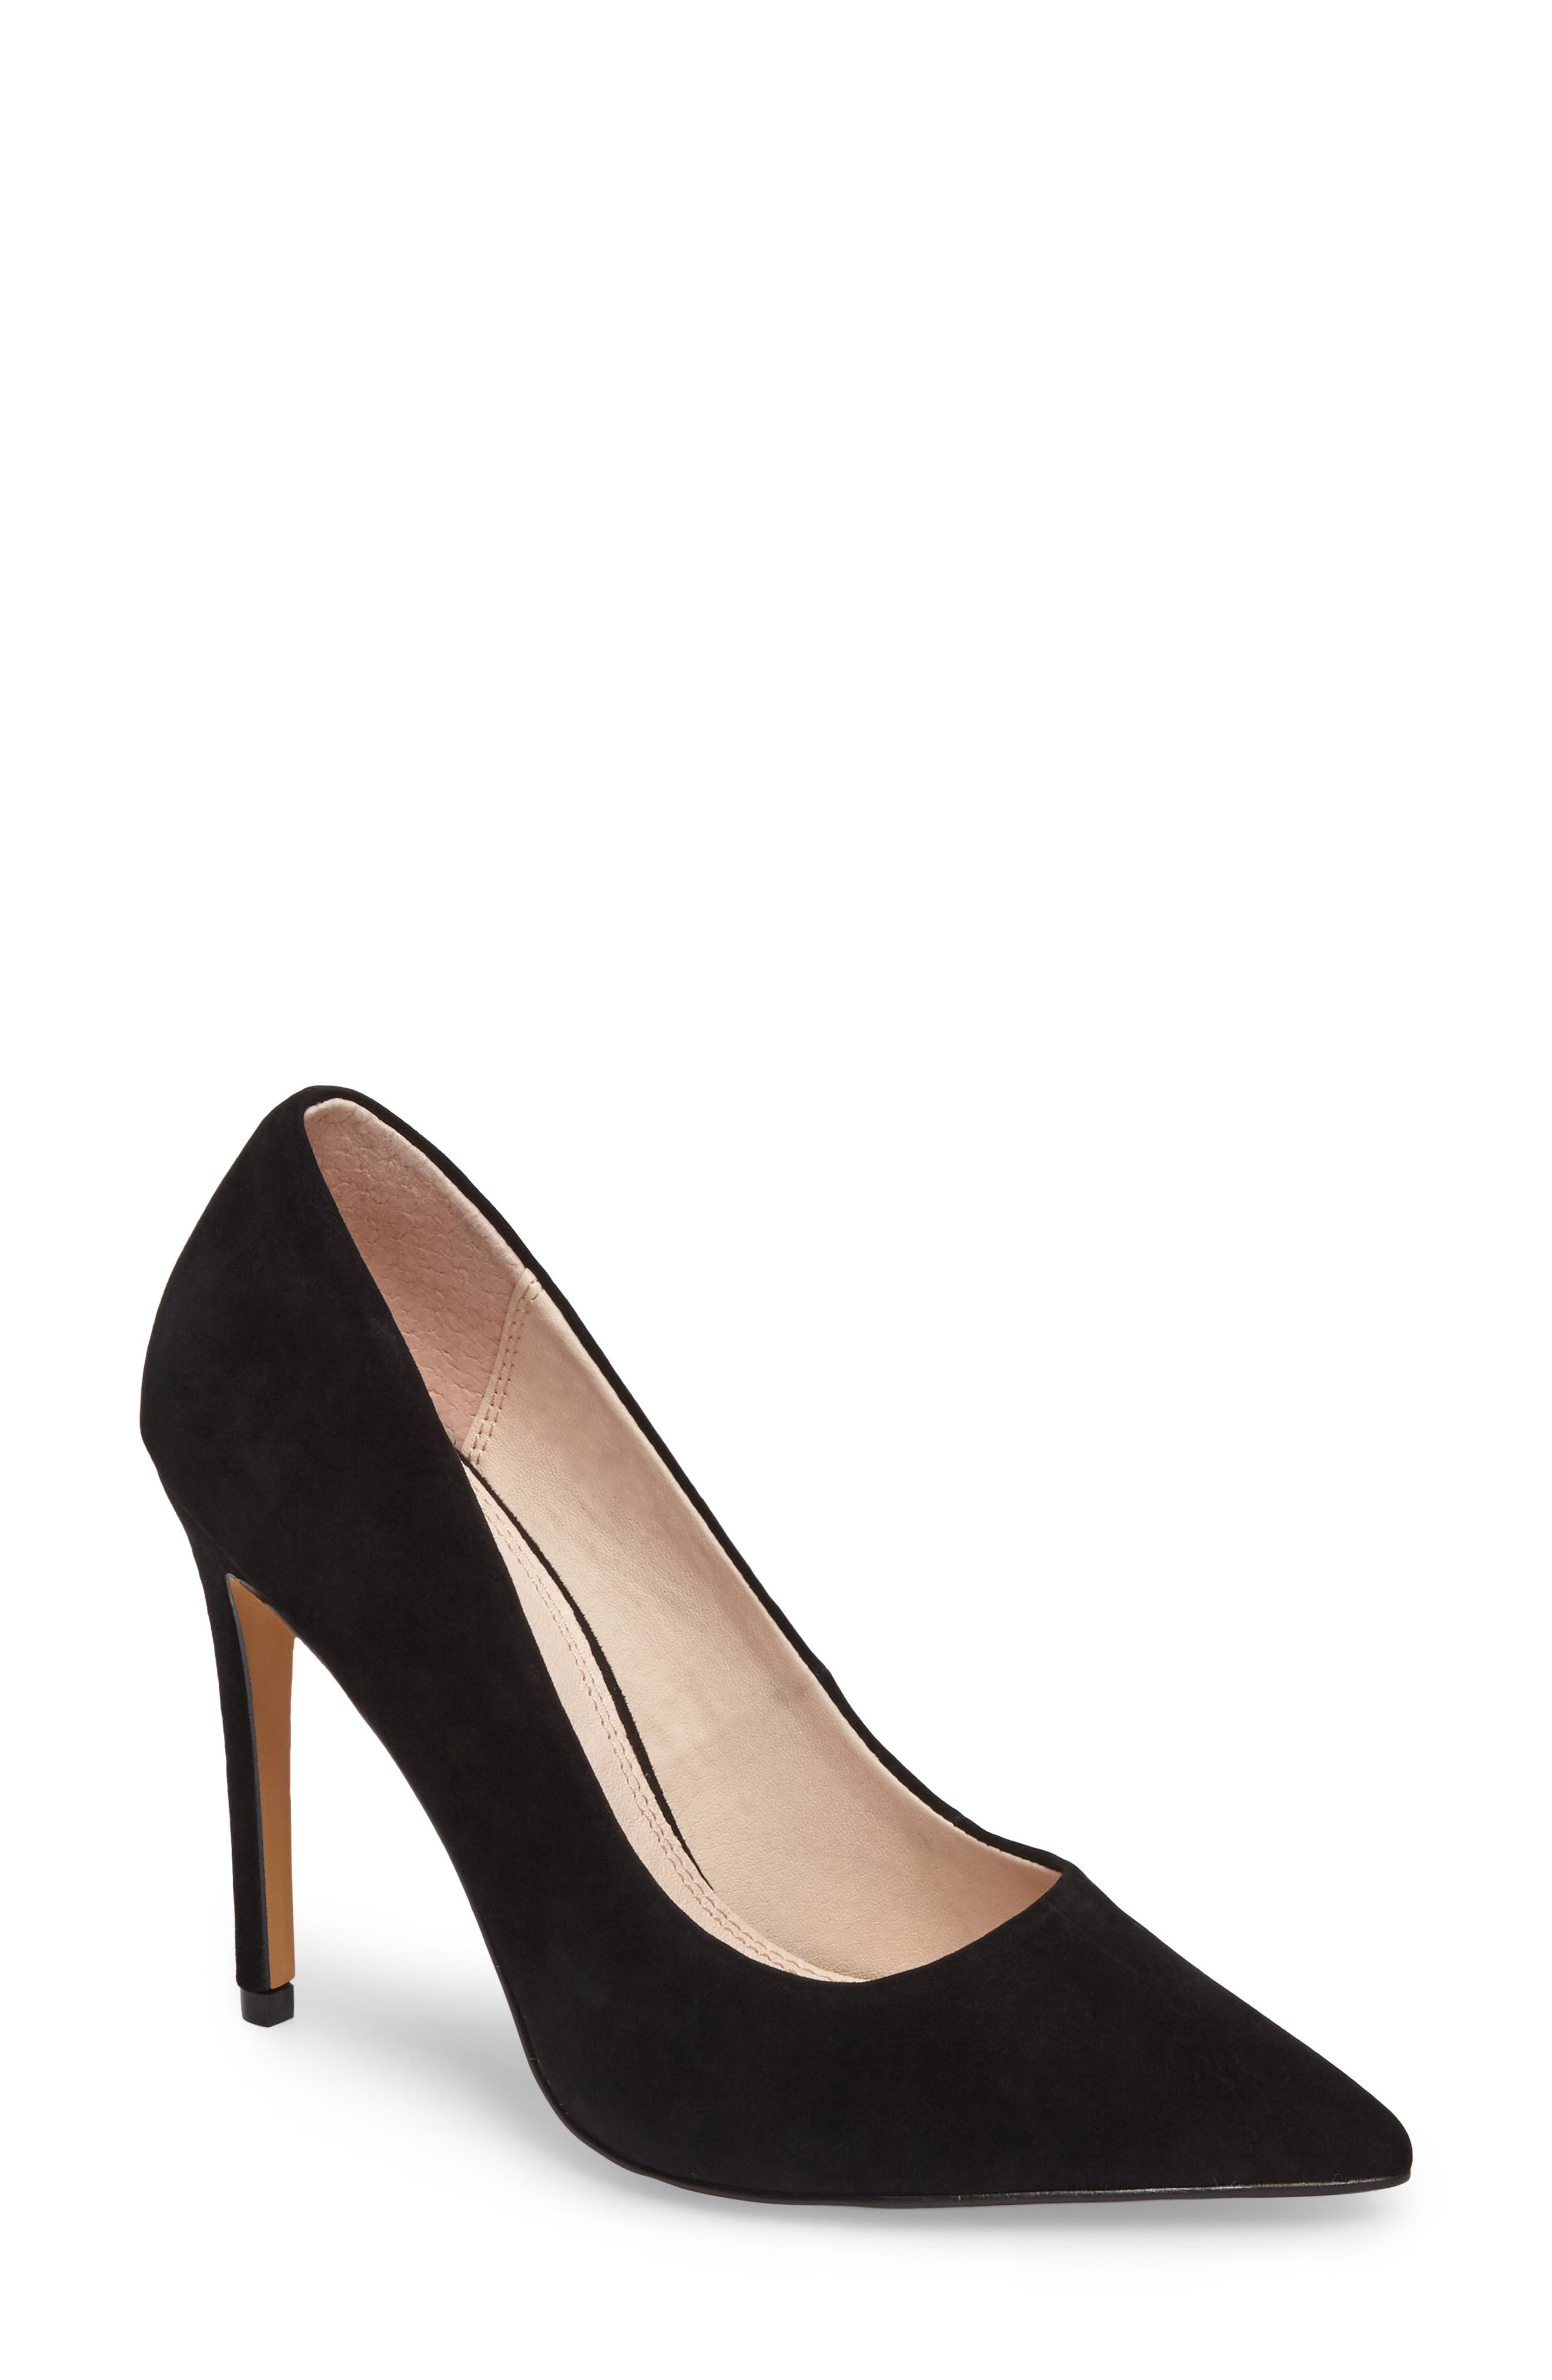 Grammer Pointy Toe Pump,                         Main,                         color, Black Leather